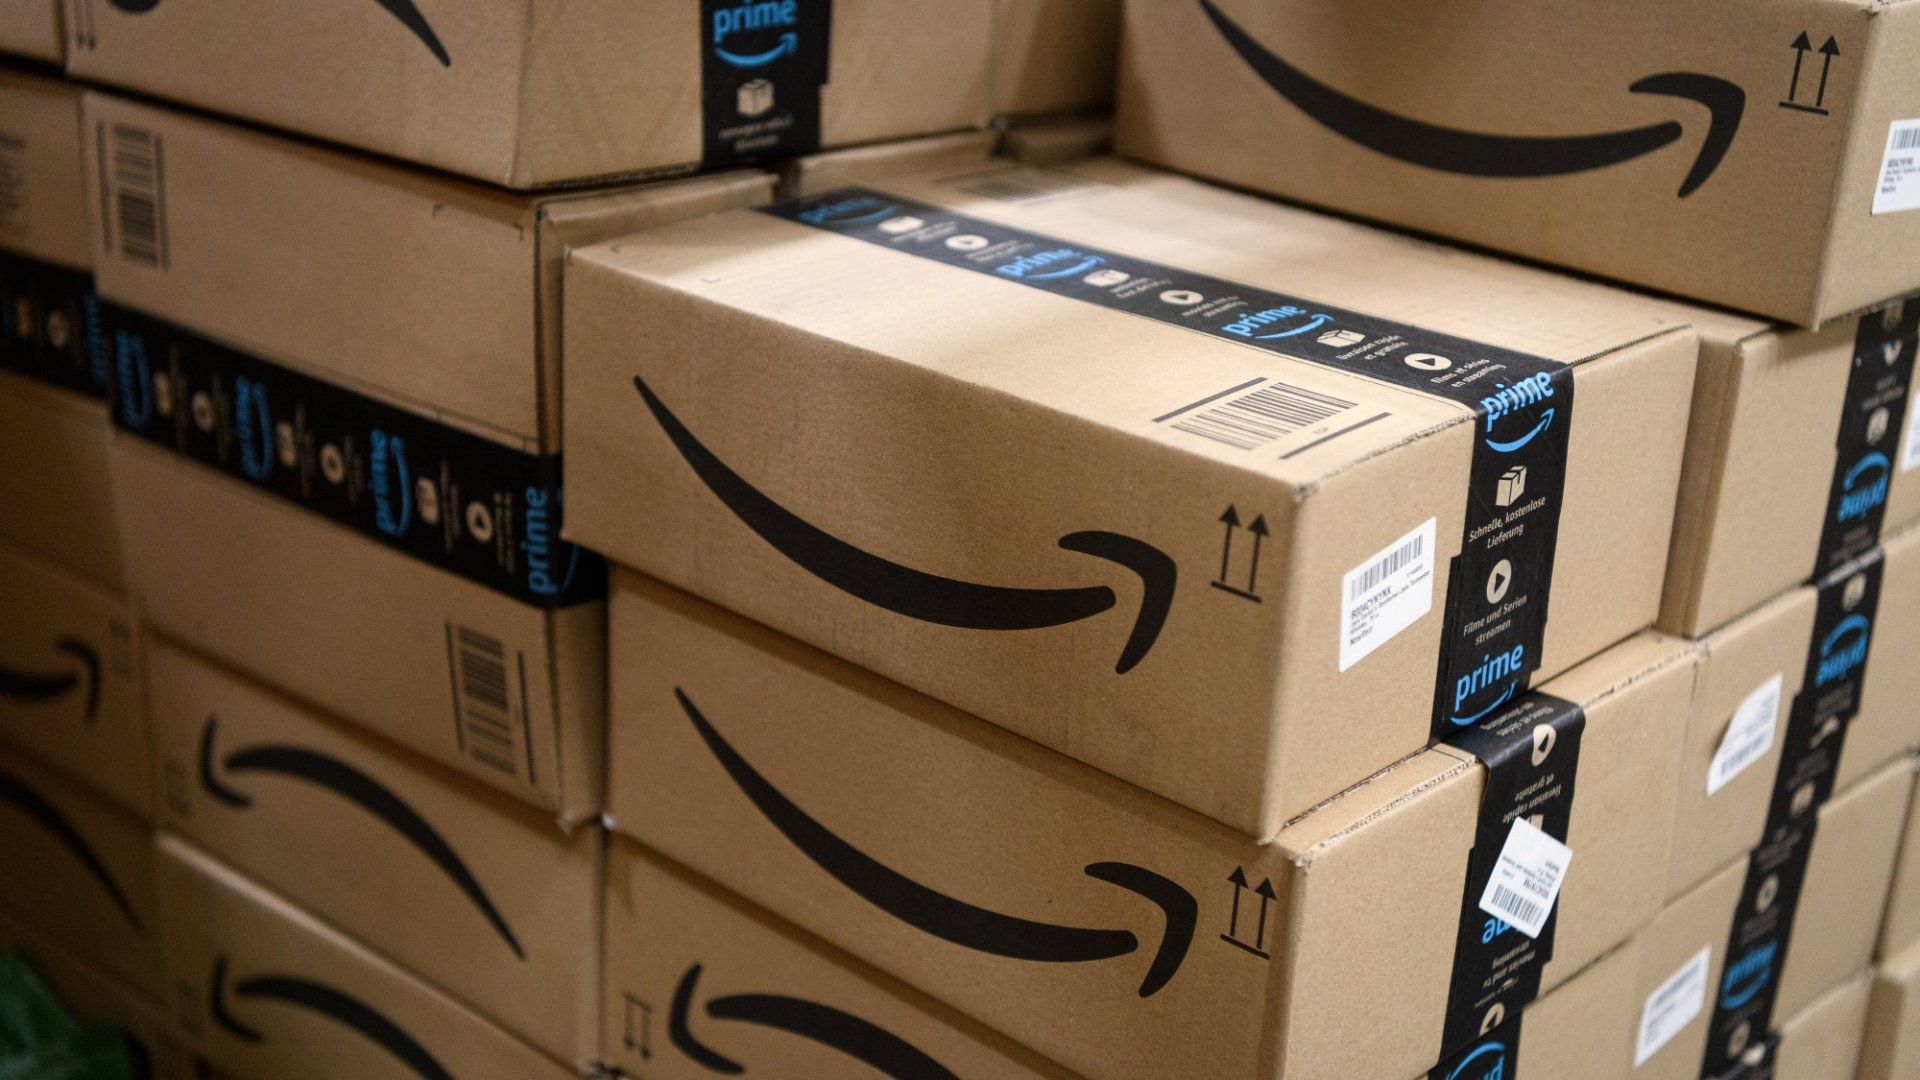 Lessons Learned From Amazon Prime Day That You Should Use for Black Friday